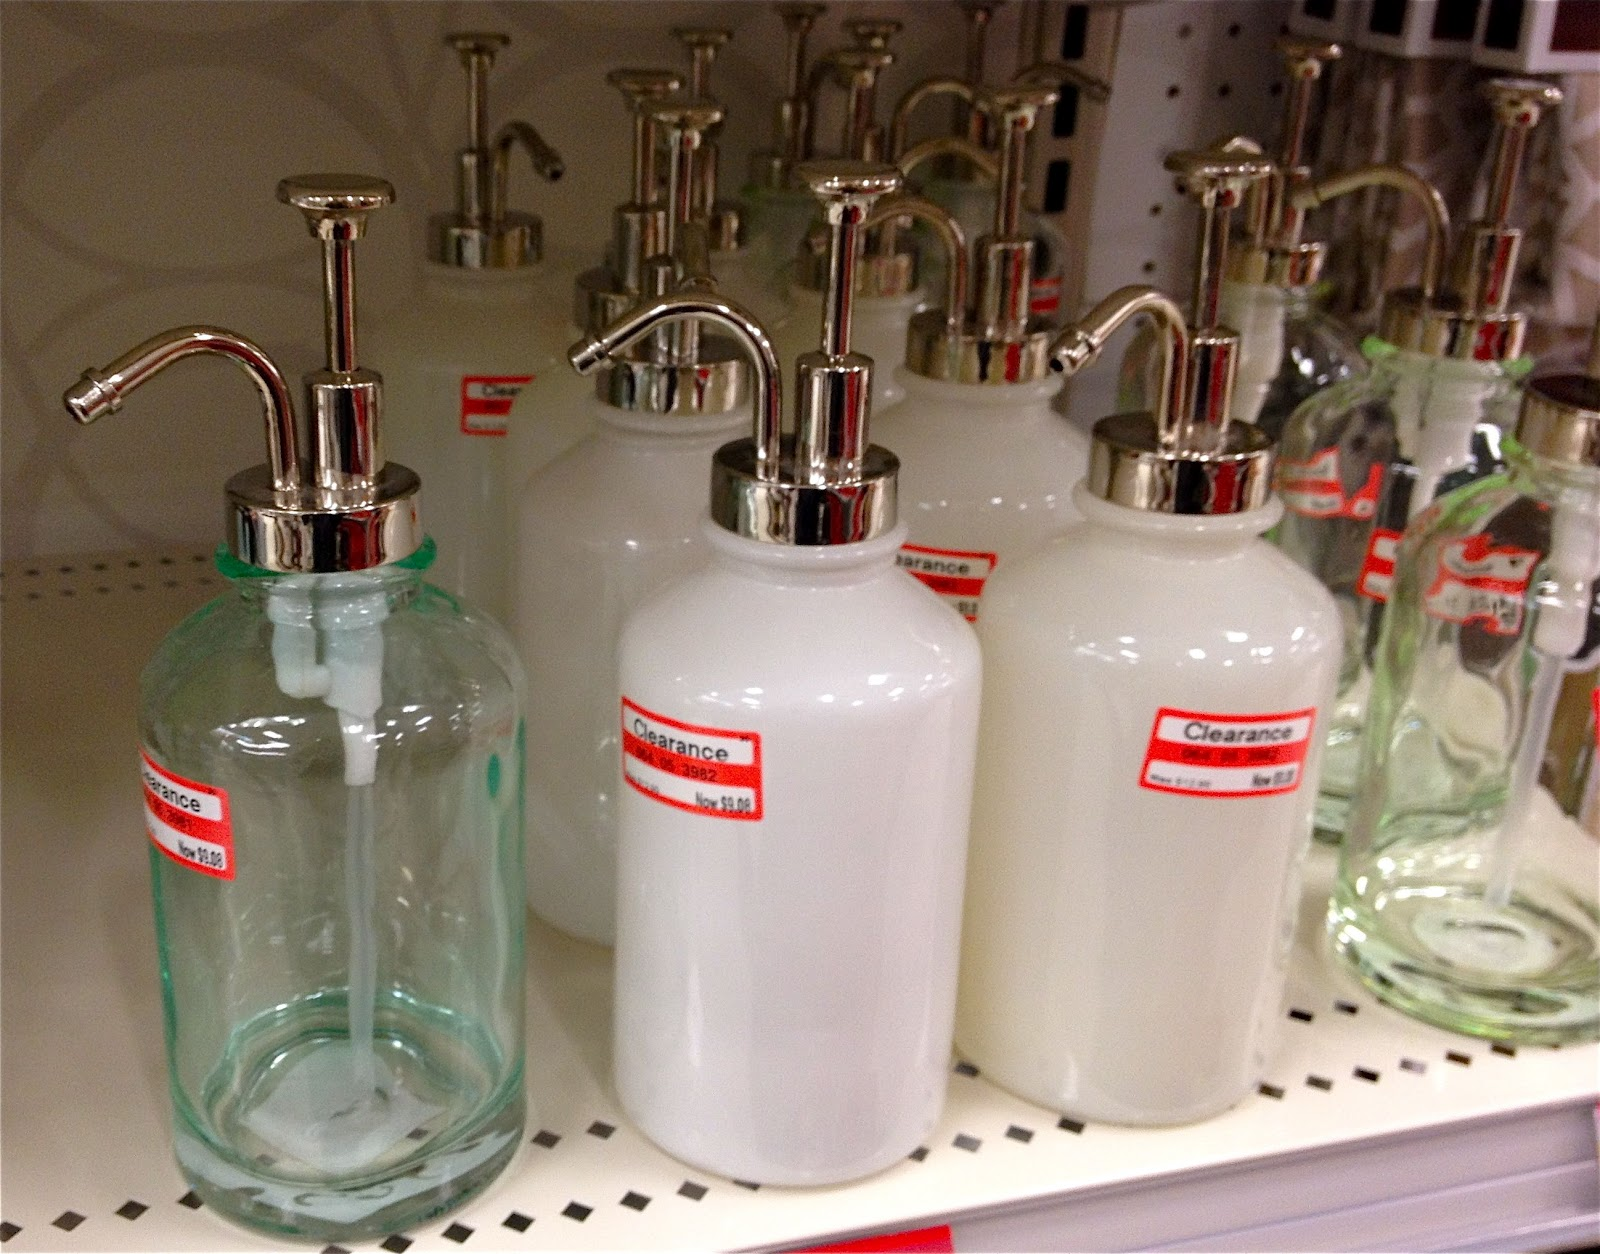 Christmas Bathroom Decor Target : Bath d?cor clearance at target driven by decor